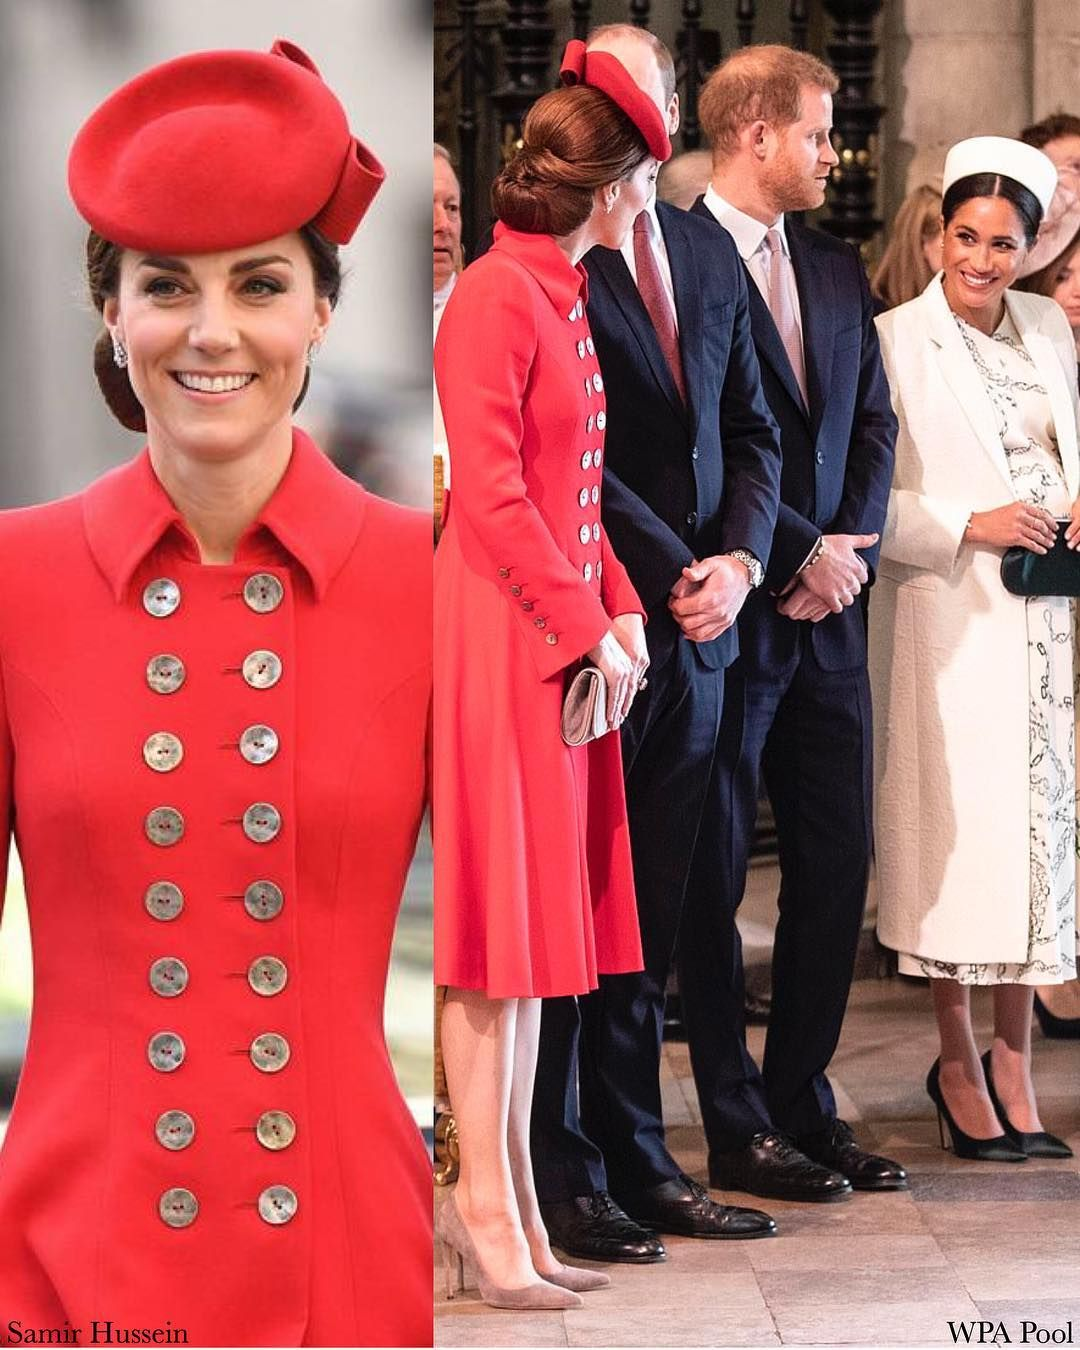 Hrh The Duchess Of Cambridge On Instagram Today The